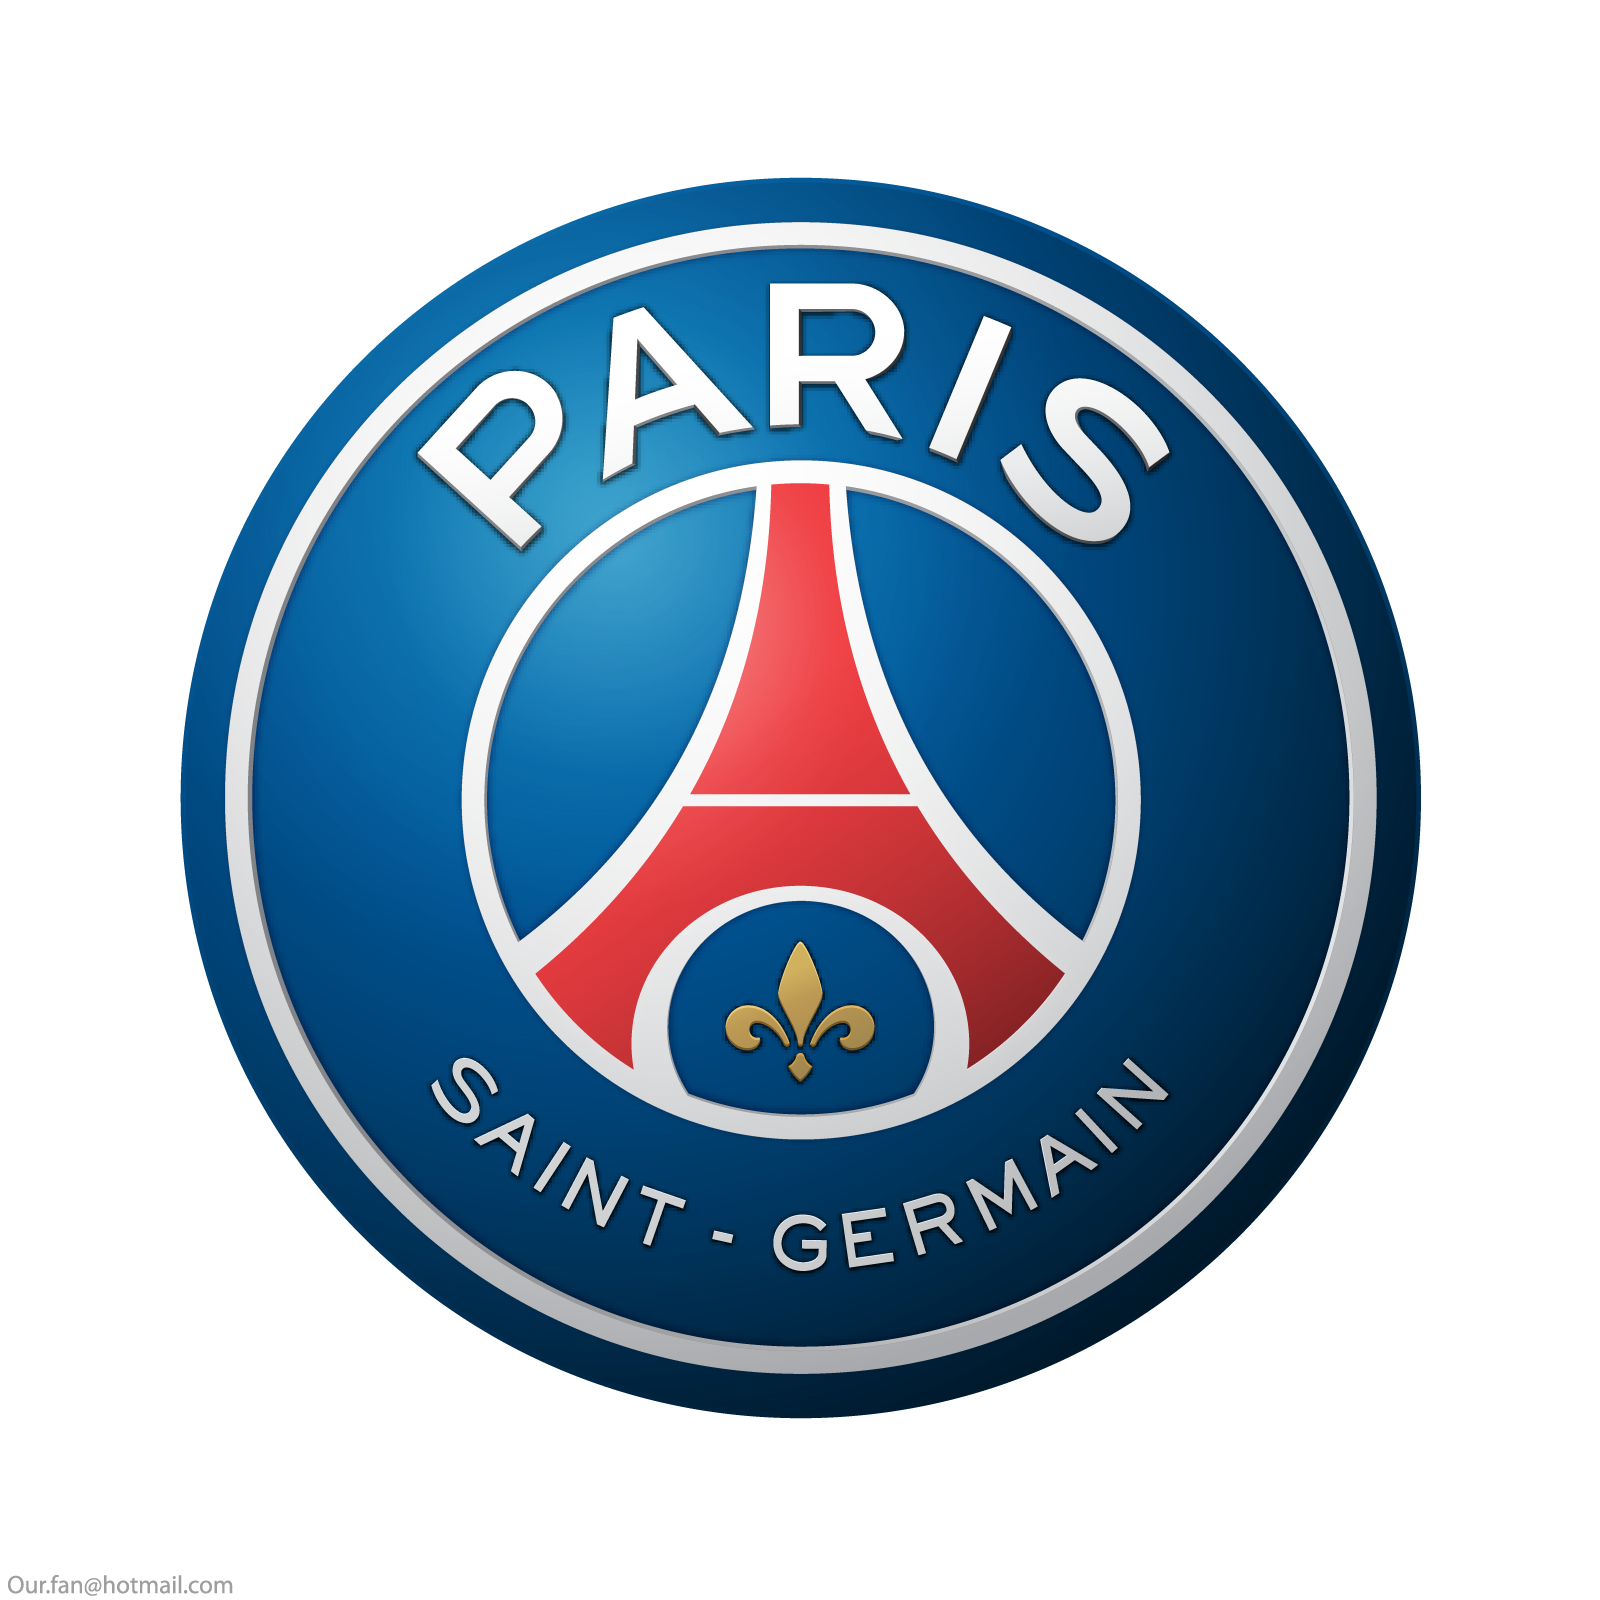 psg logo escudo paris saint germain 2 - PSG Logo - Paris Saint-Germain Logo